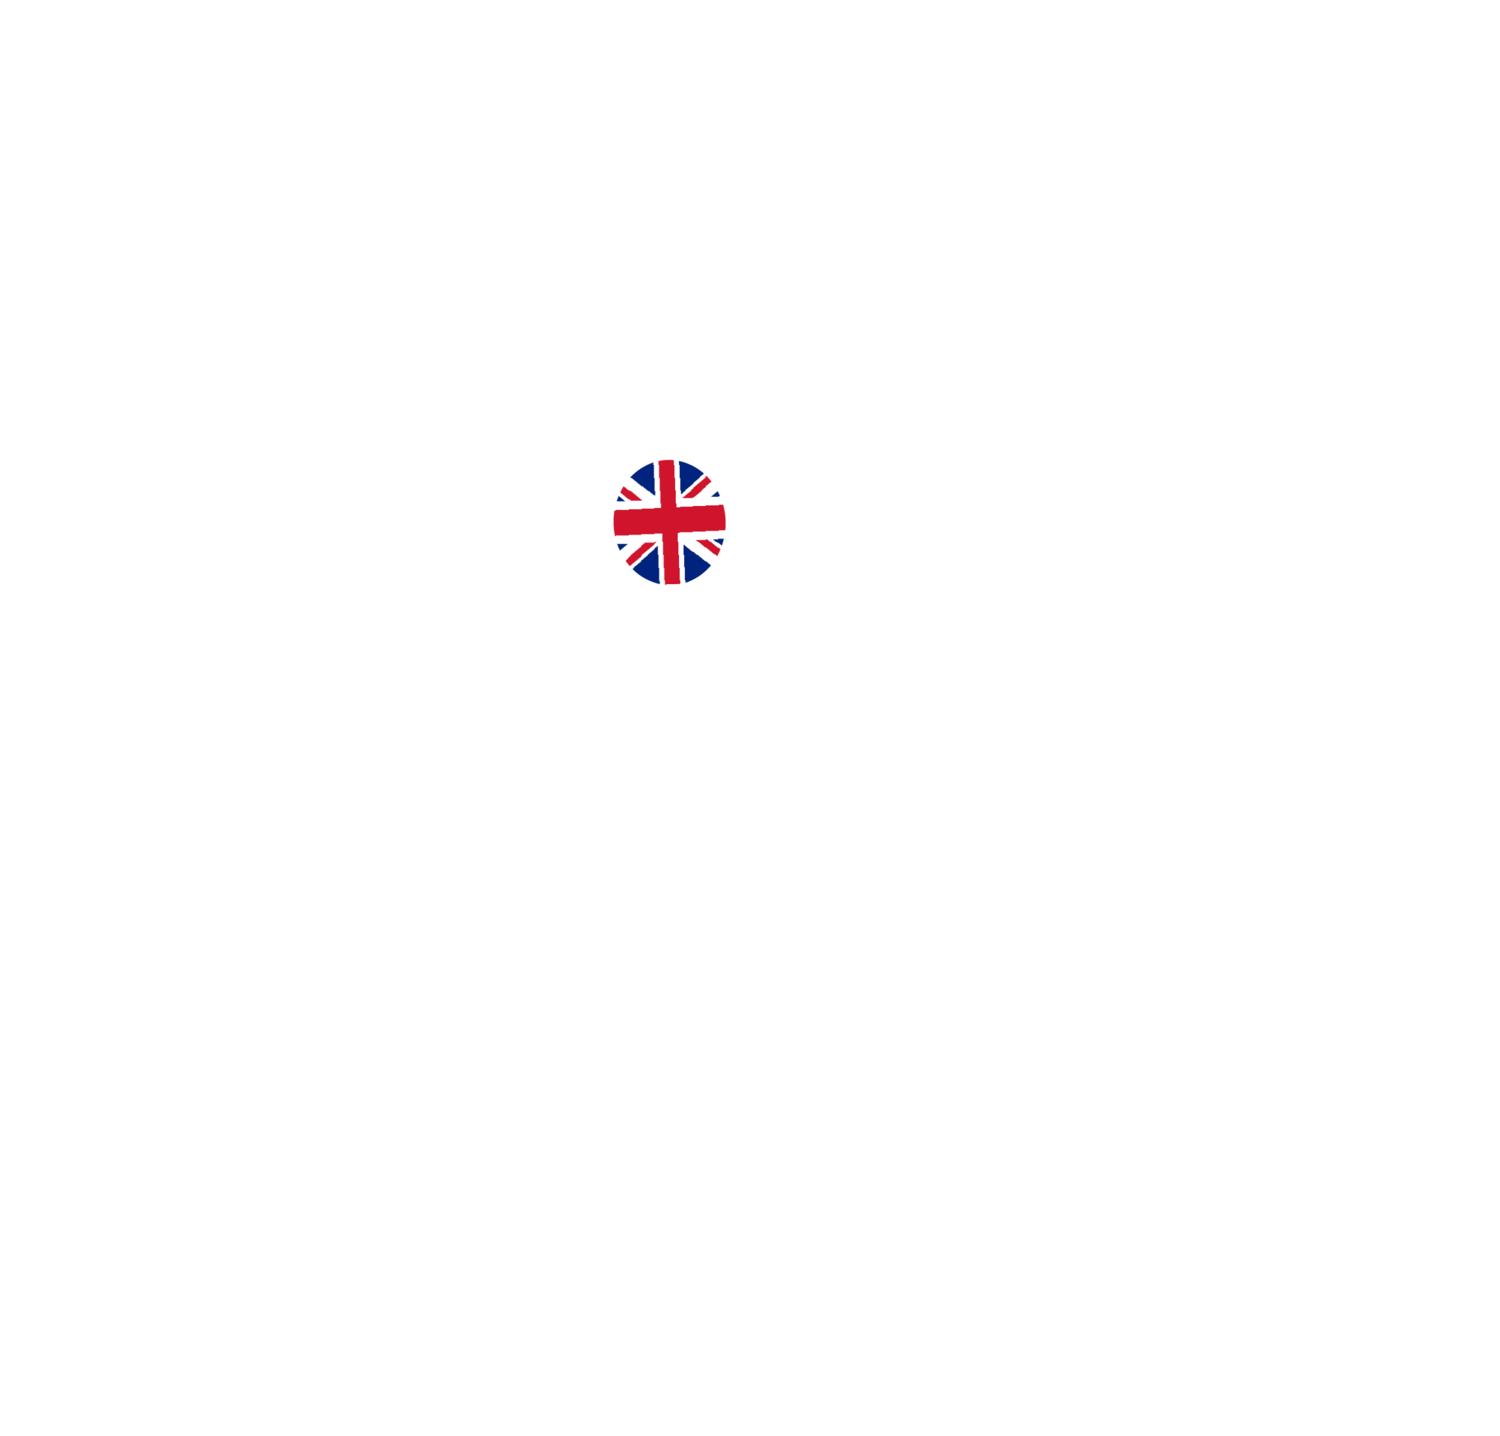 The British Headshot Guy